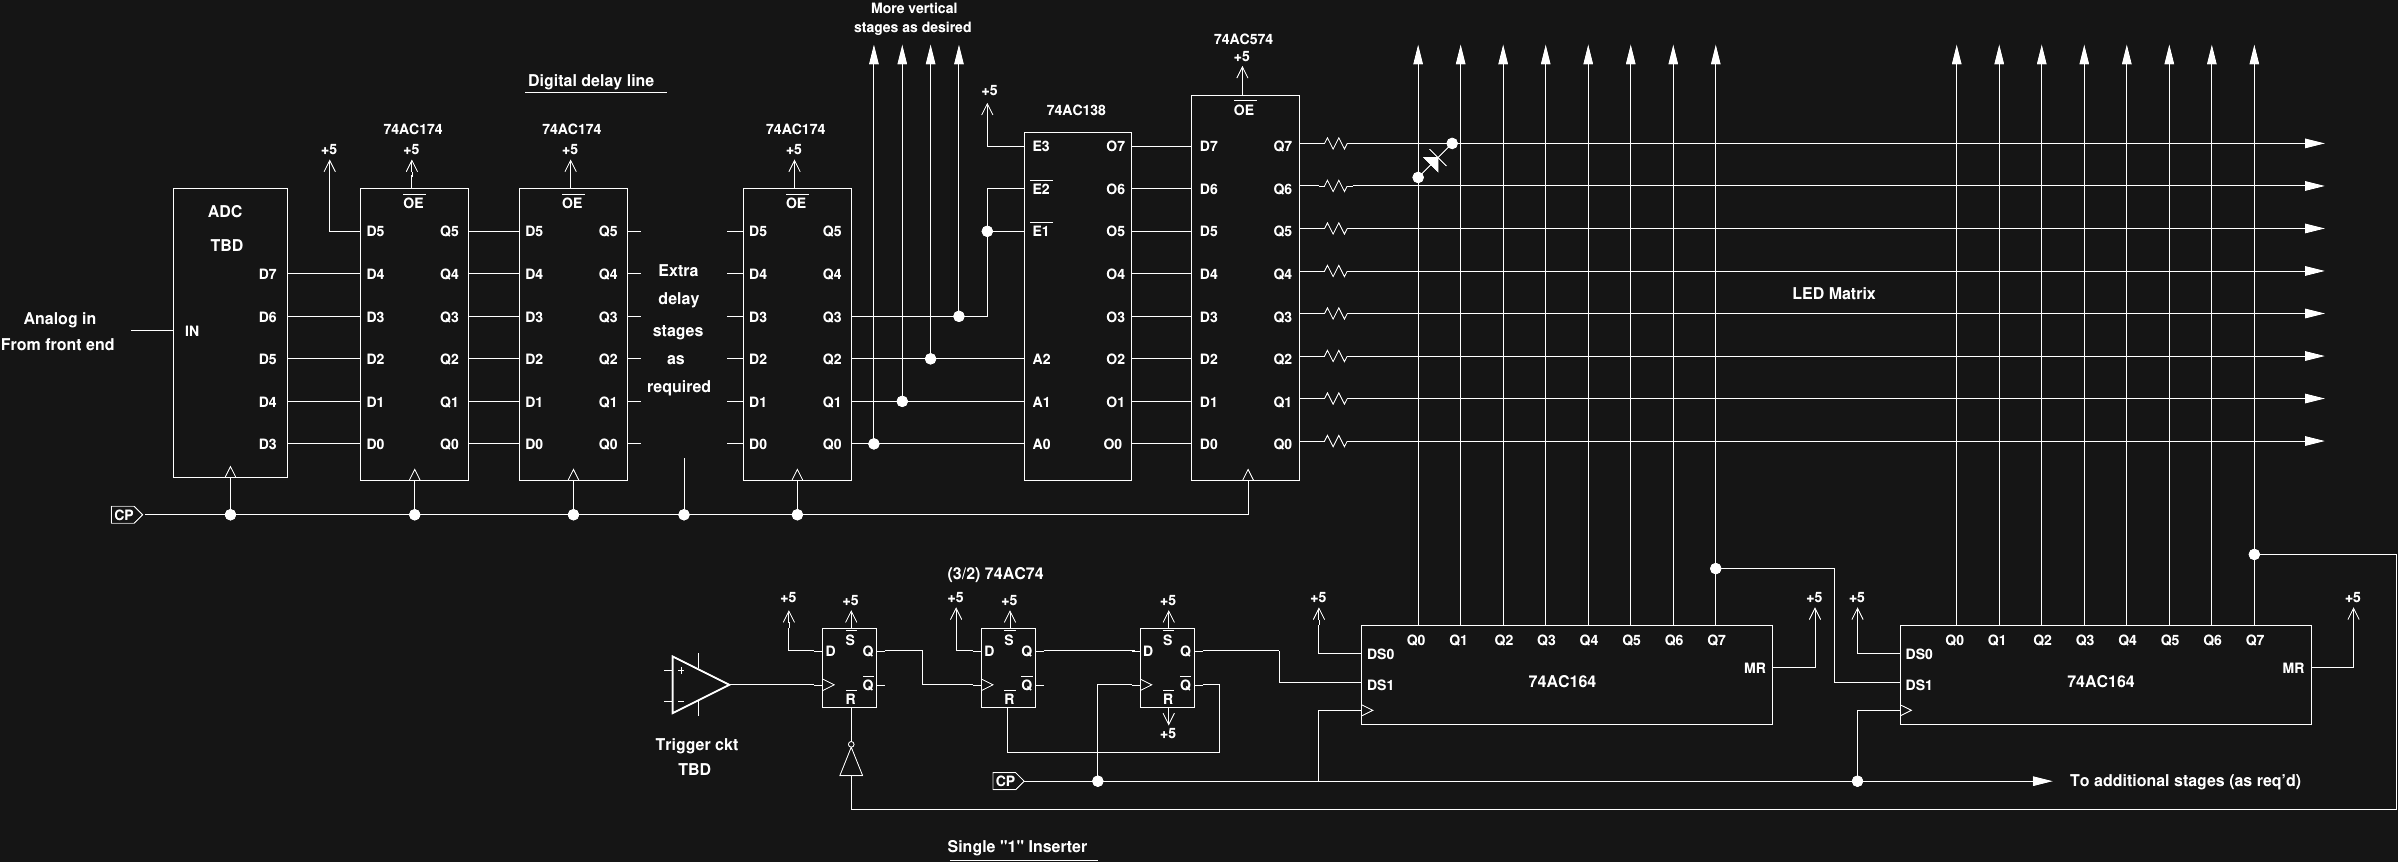 Basic Led Scanning Design Details 8 Bit Shift Register Logic Diagram The Horizontal Sweep Is Done With A Series Of 74ac164 Registers So Resolution Can Be Expanded In Multiples Columns You